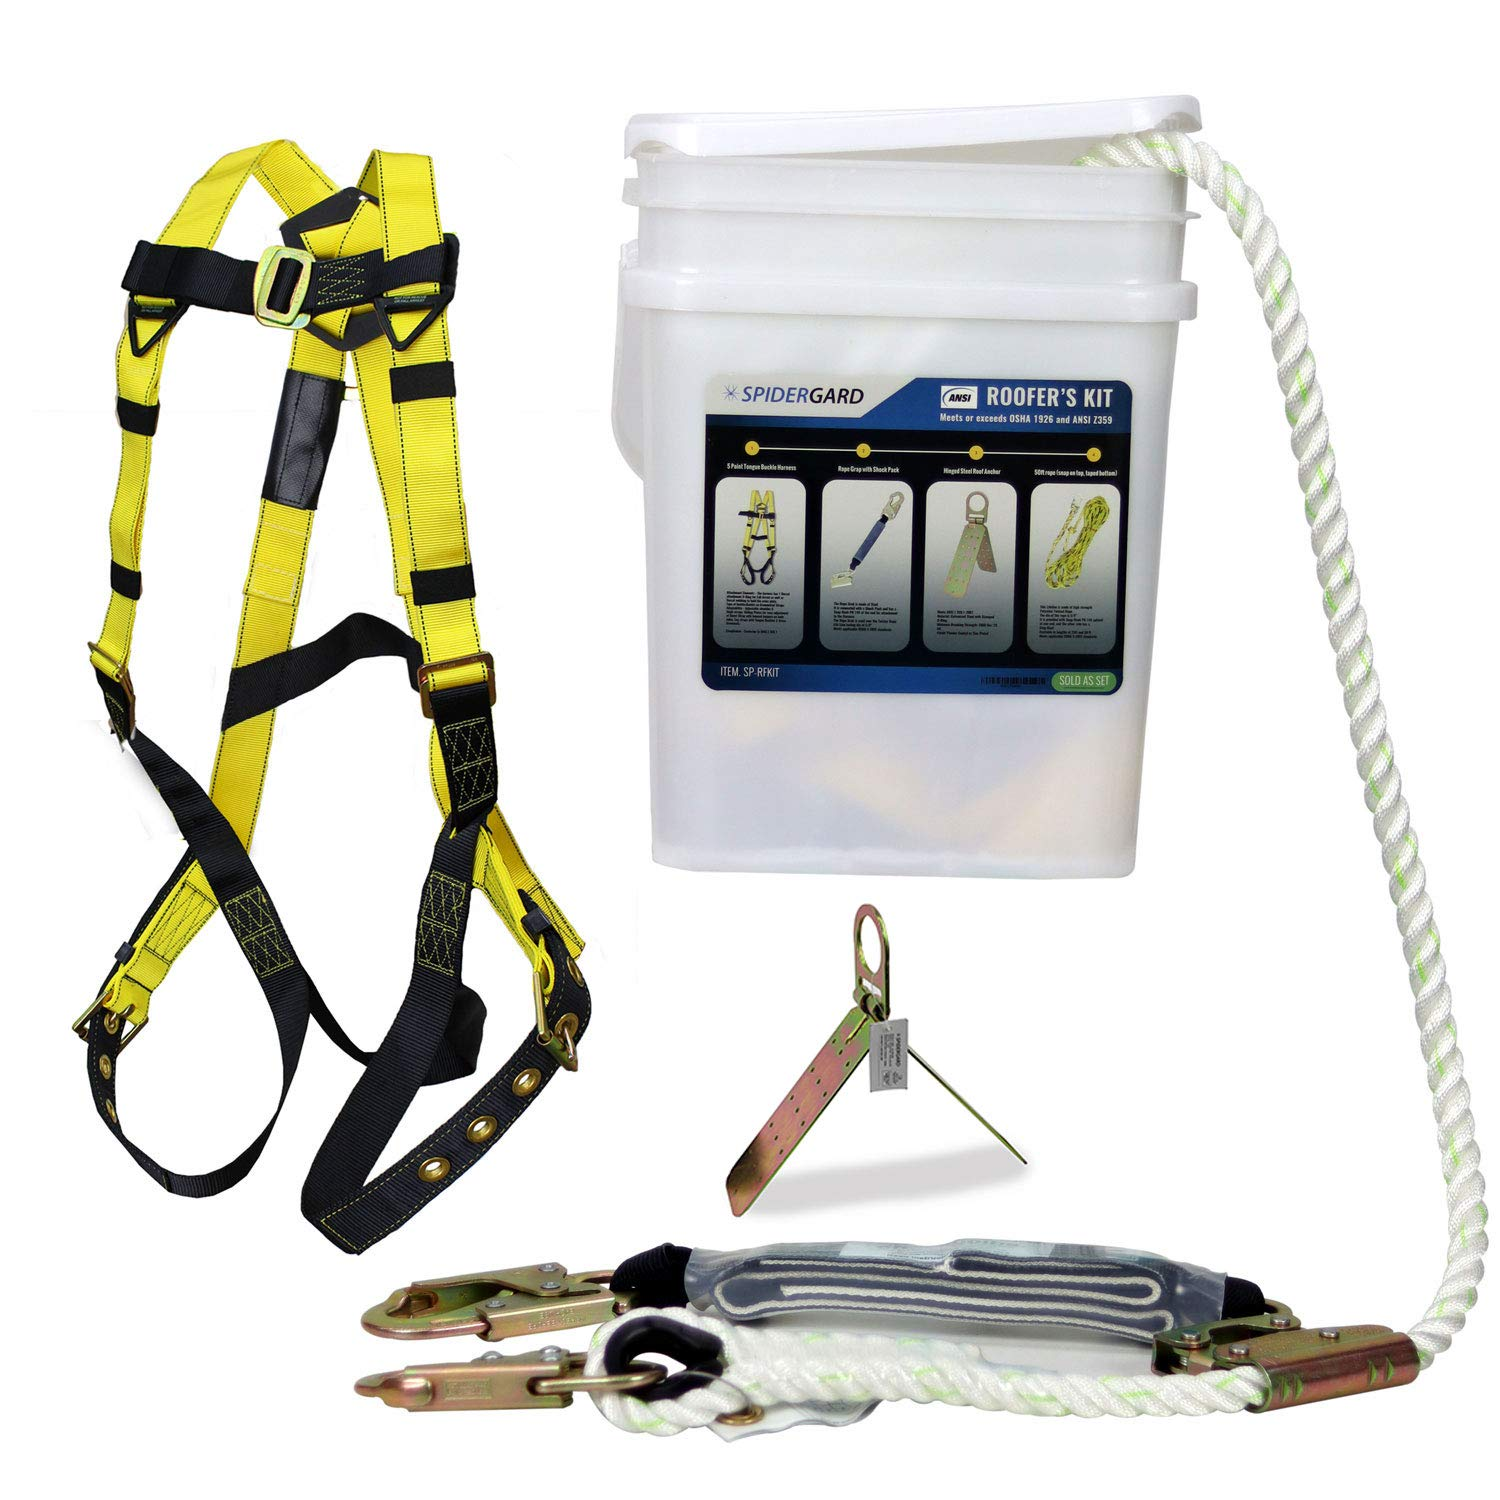 Spidergard SP-RFKIT Construction Harness with Leg Tongue Buckle Straps and 4 Pieces Roof Kit Combo by Spidergard